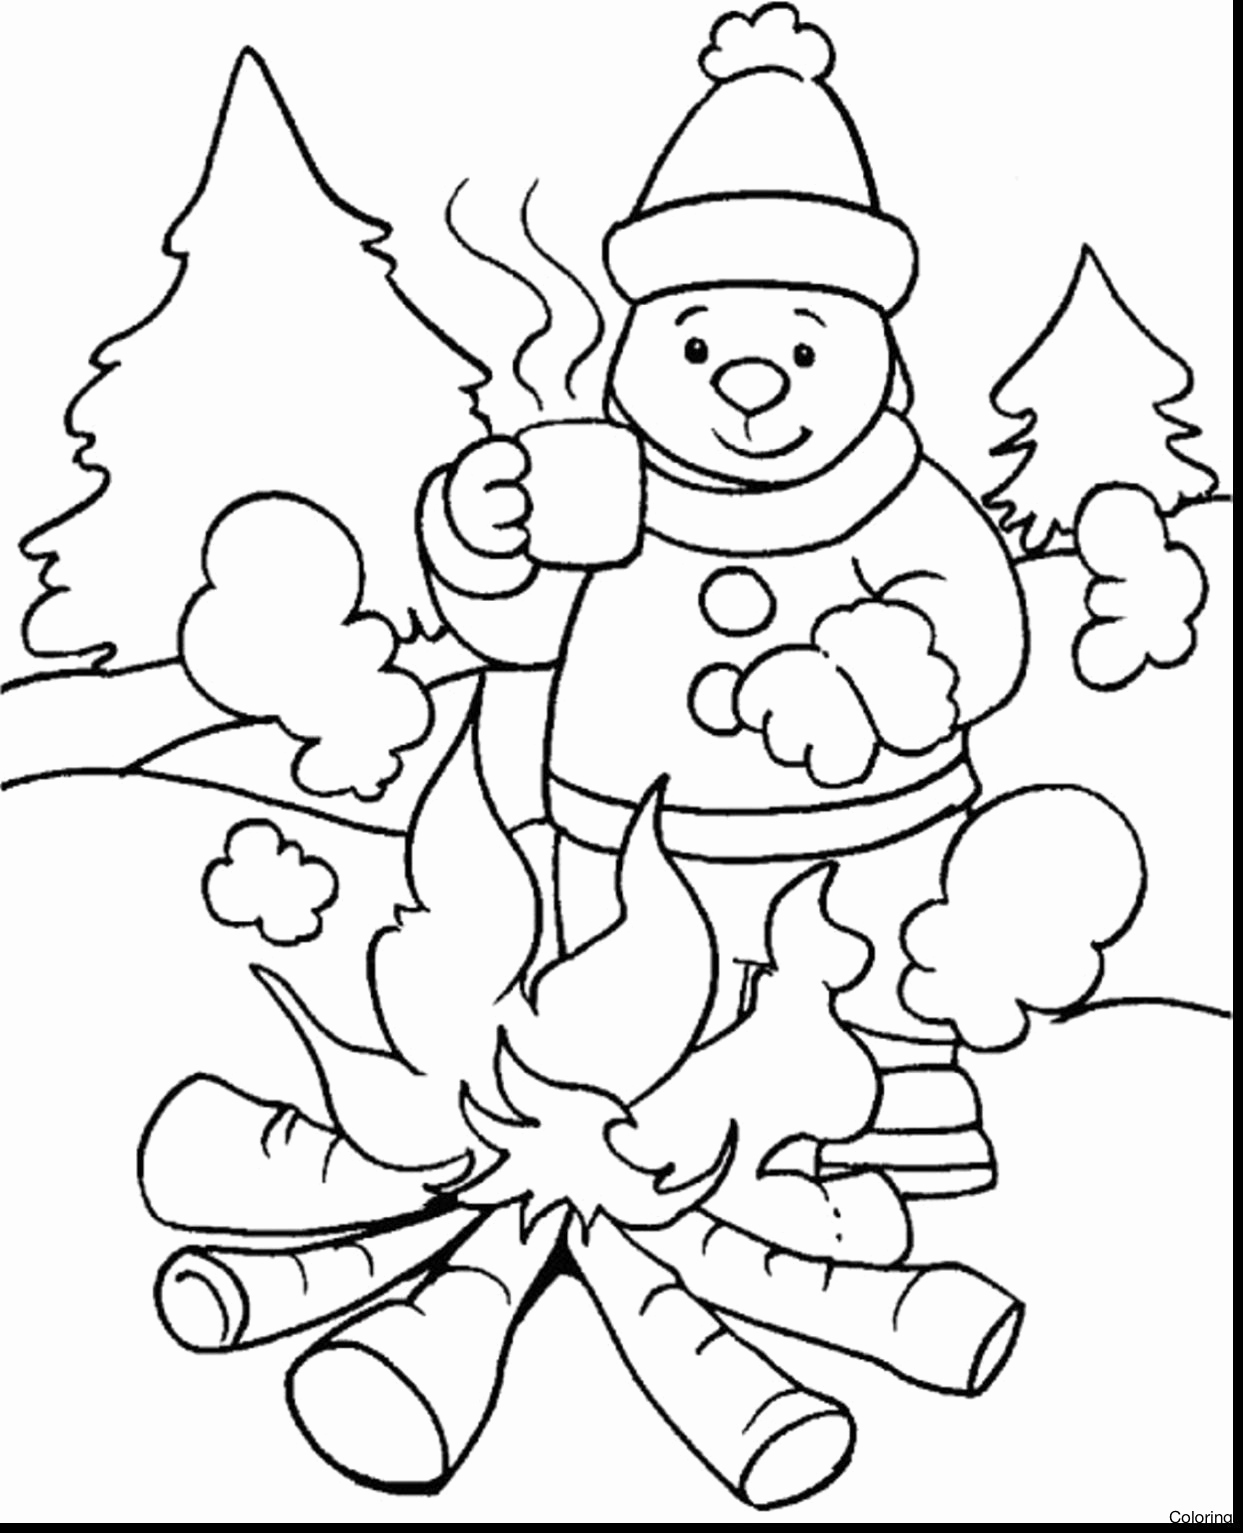 1243x1533 50 Inspirational Image Of Free Winter Coloring Pages